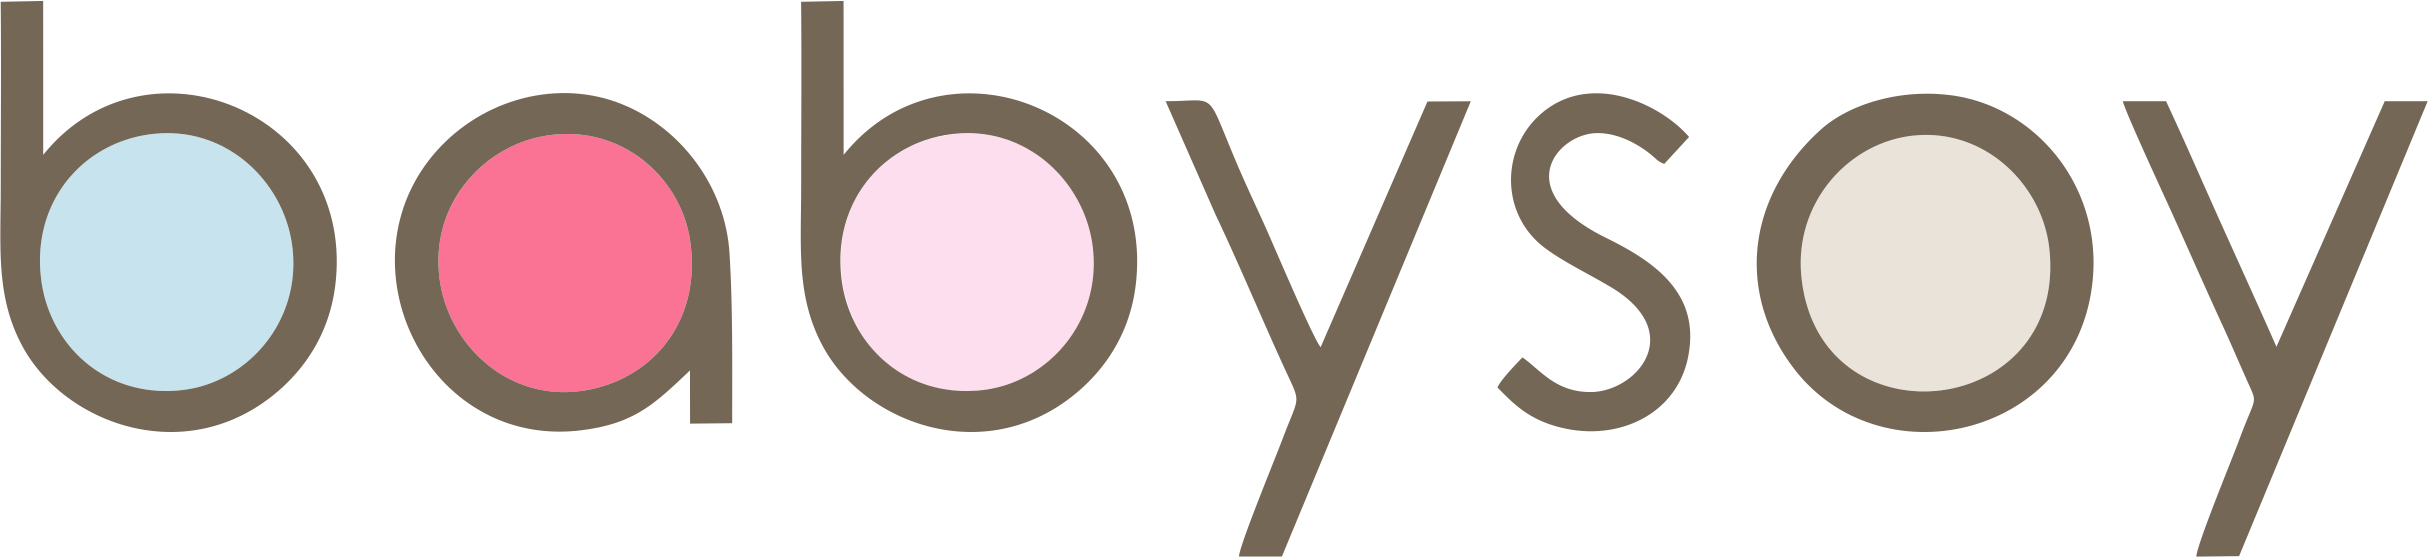 Babysoy Philippines